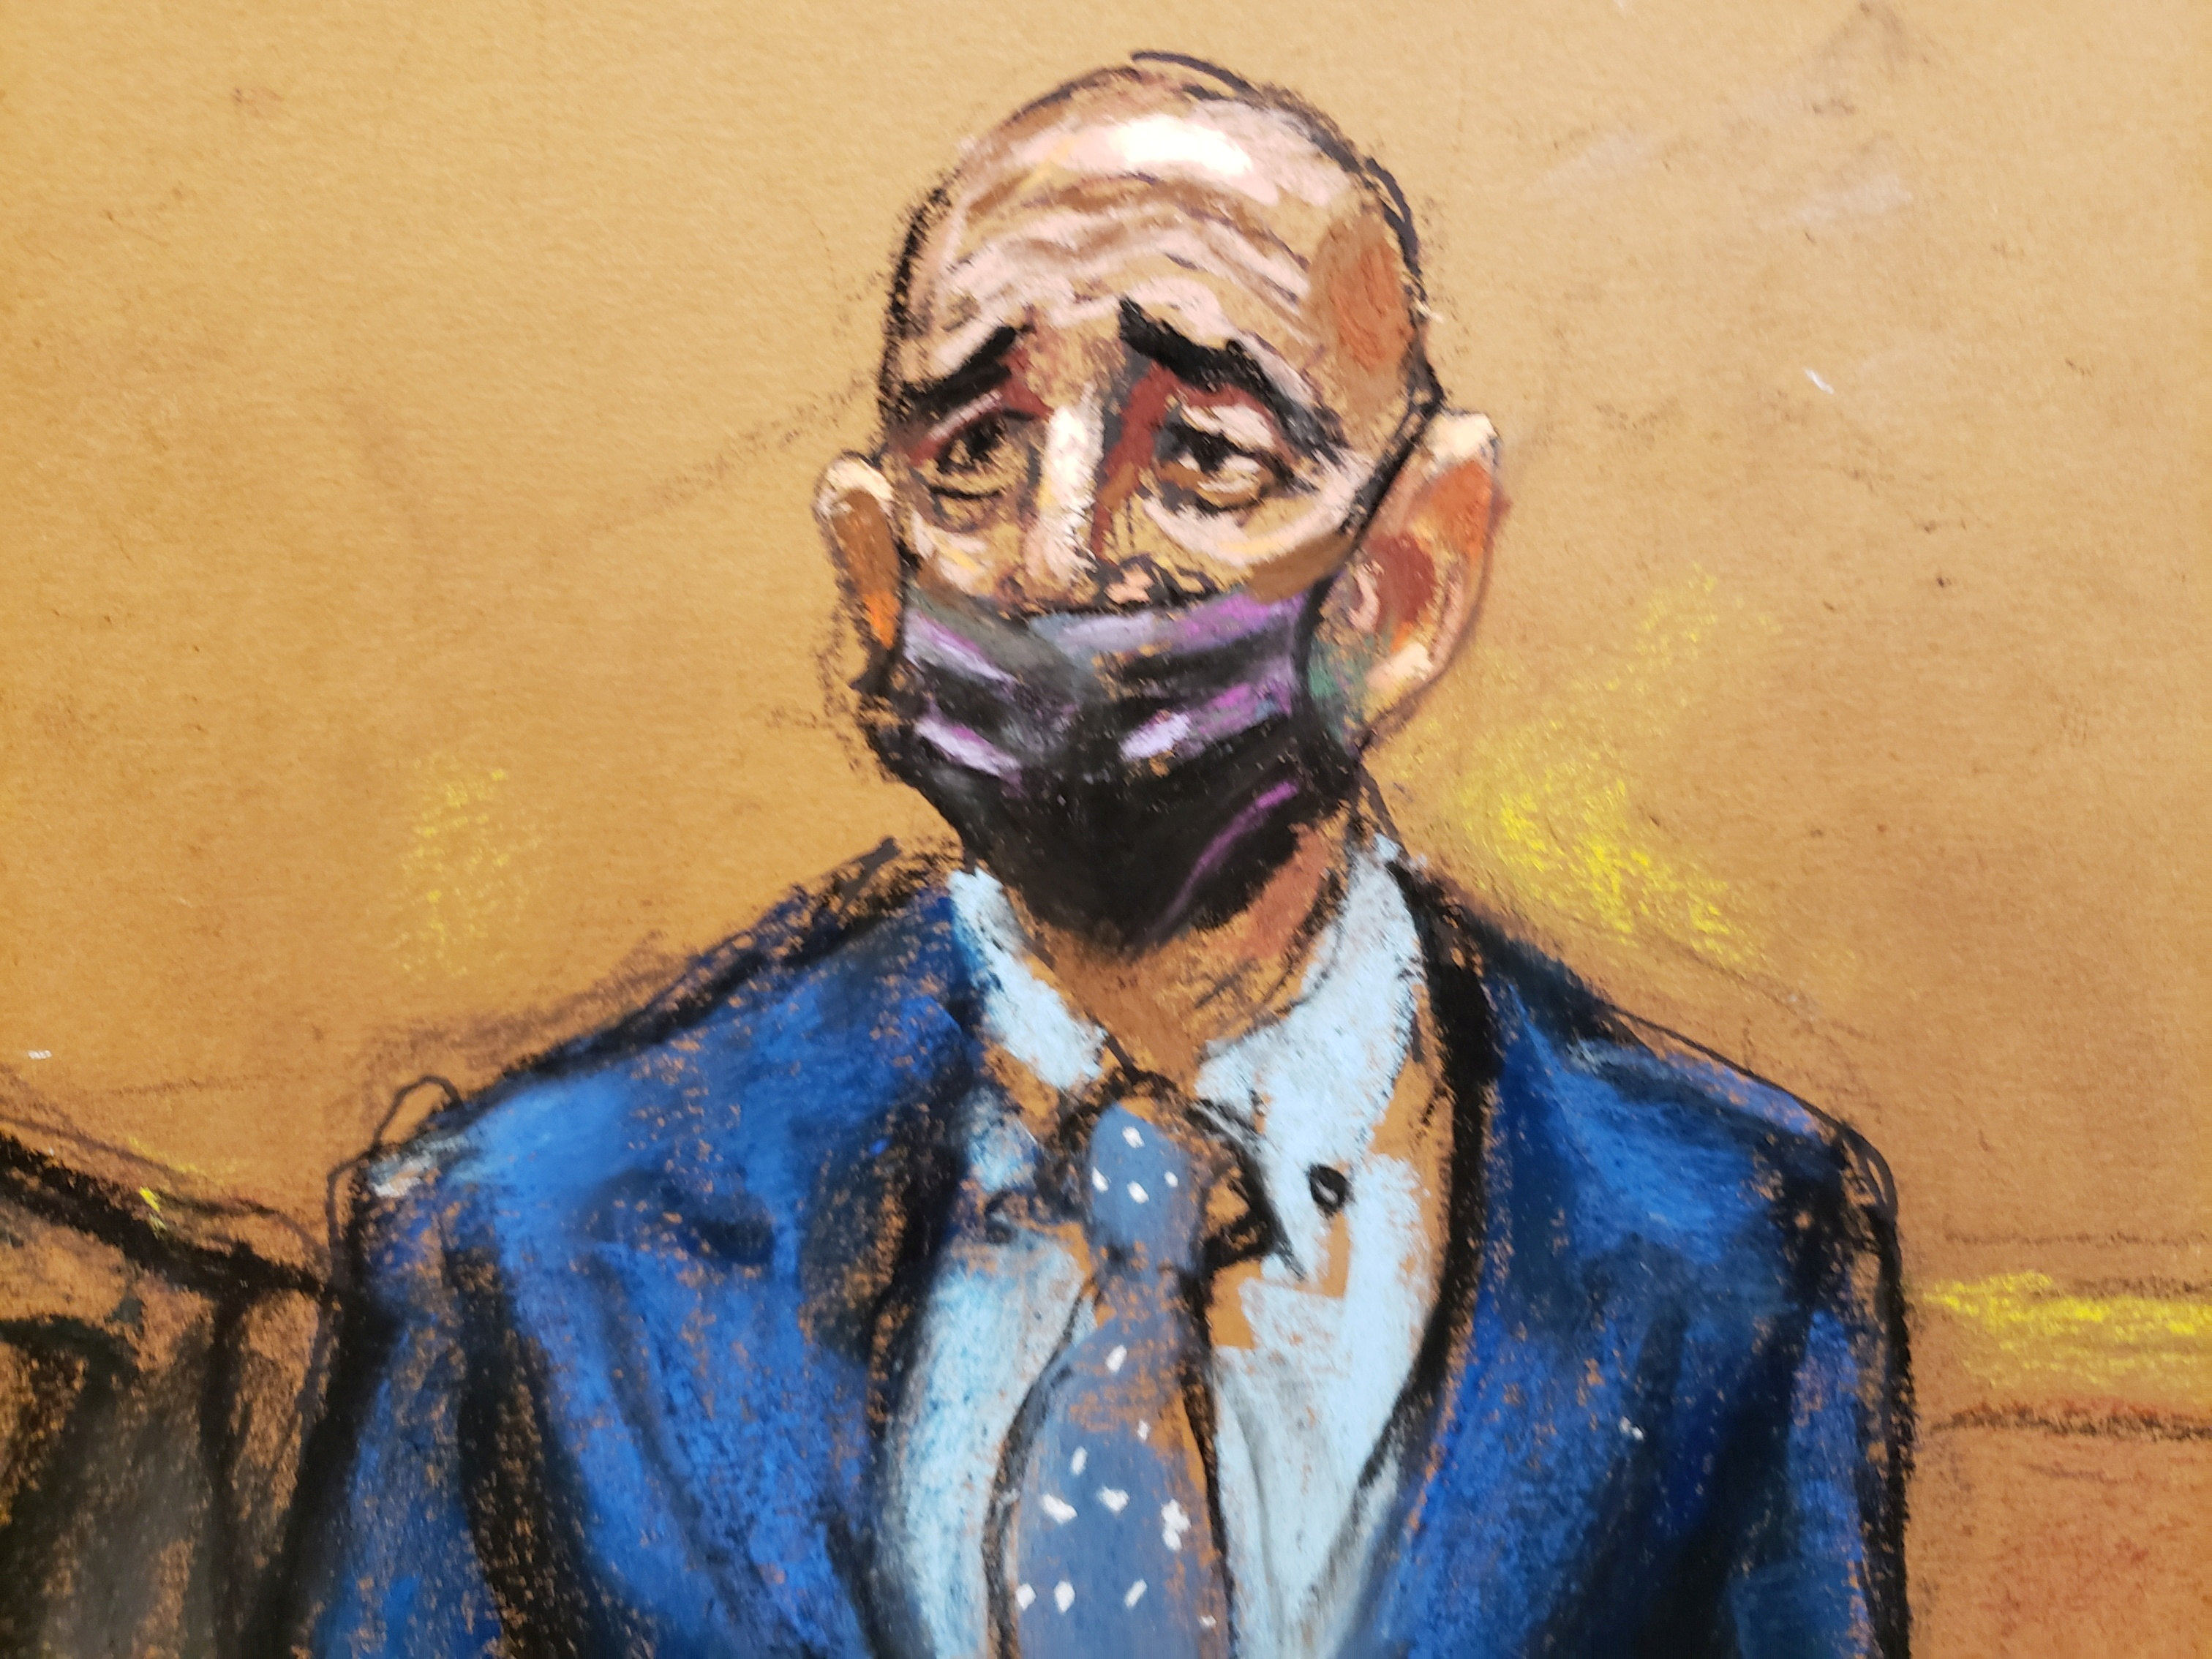 Thomas Barrack, a billionaire friend of Donald Trump who chaired the former president's inaugural fund, stands during his arraignment hearing at the Brooklyn Federal Courthouse in Brooklyn, New York, U.S., July 26, 2021 in this courtroom sketch.  REUTERS/Jane Rosenberg